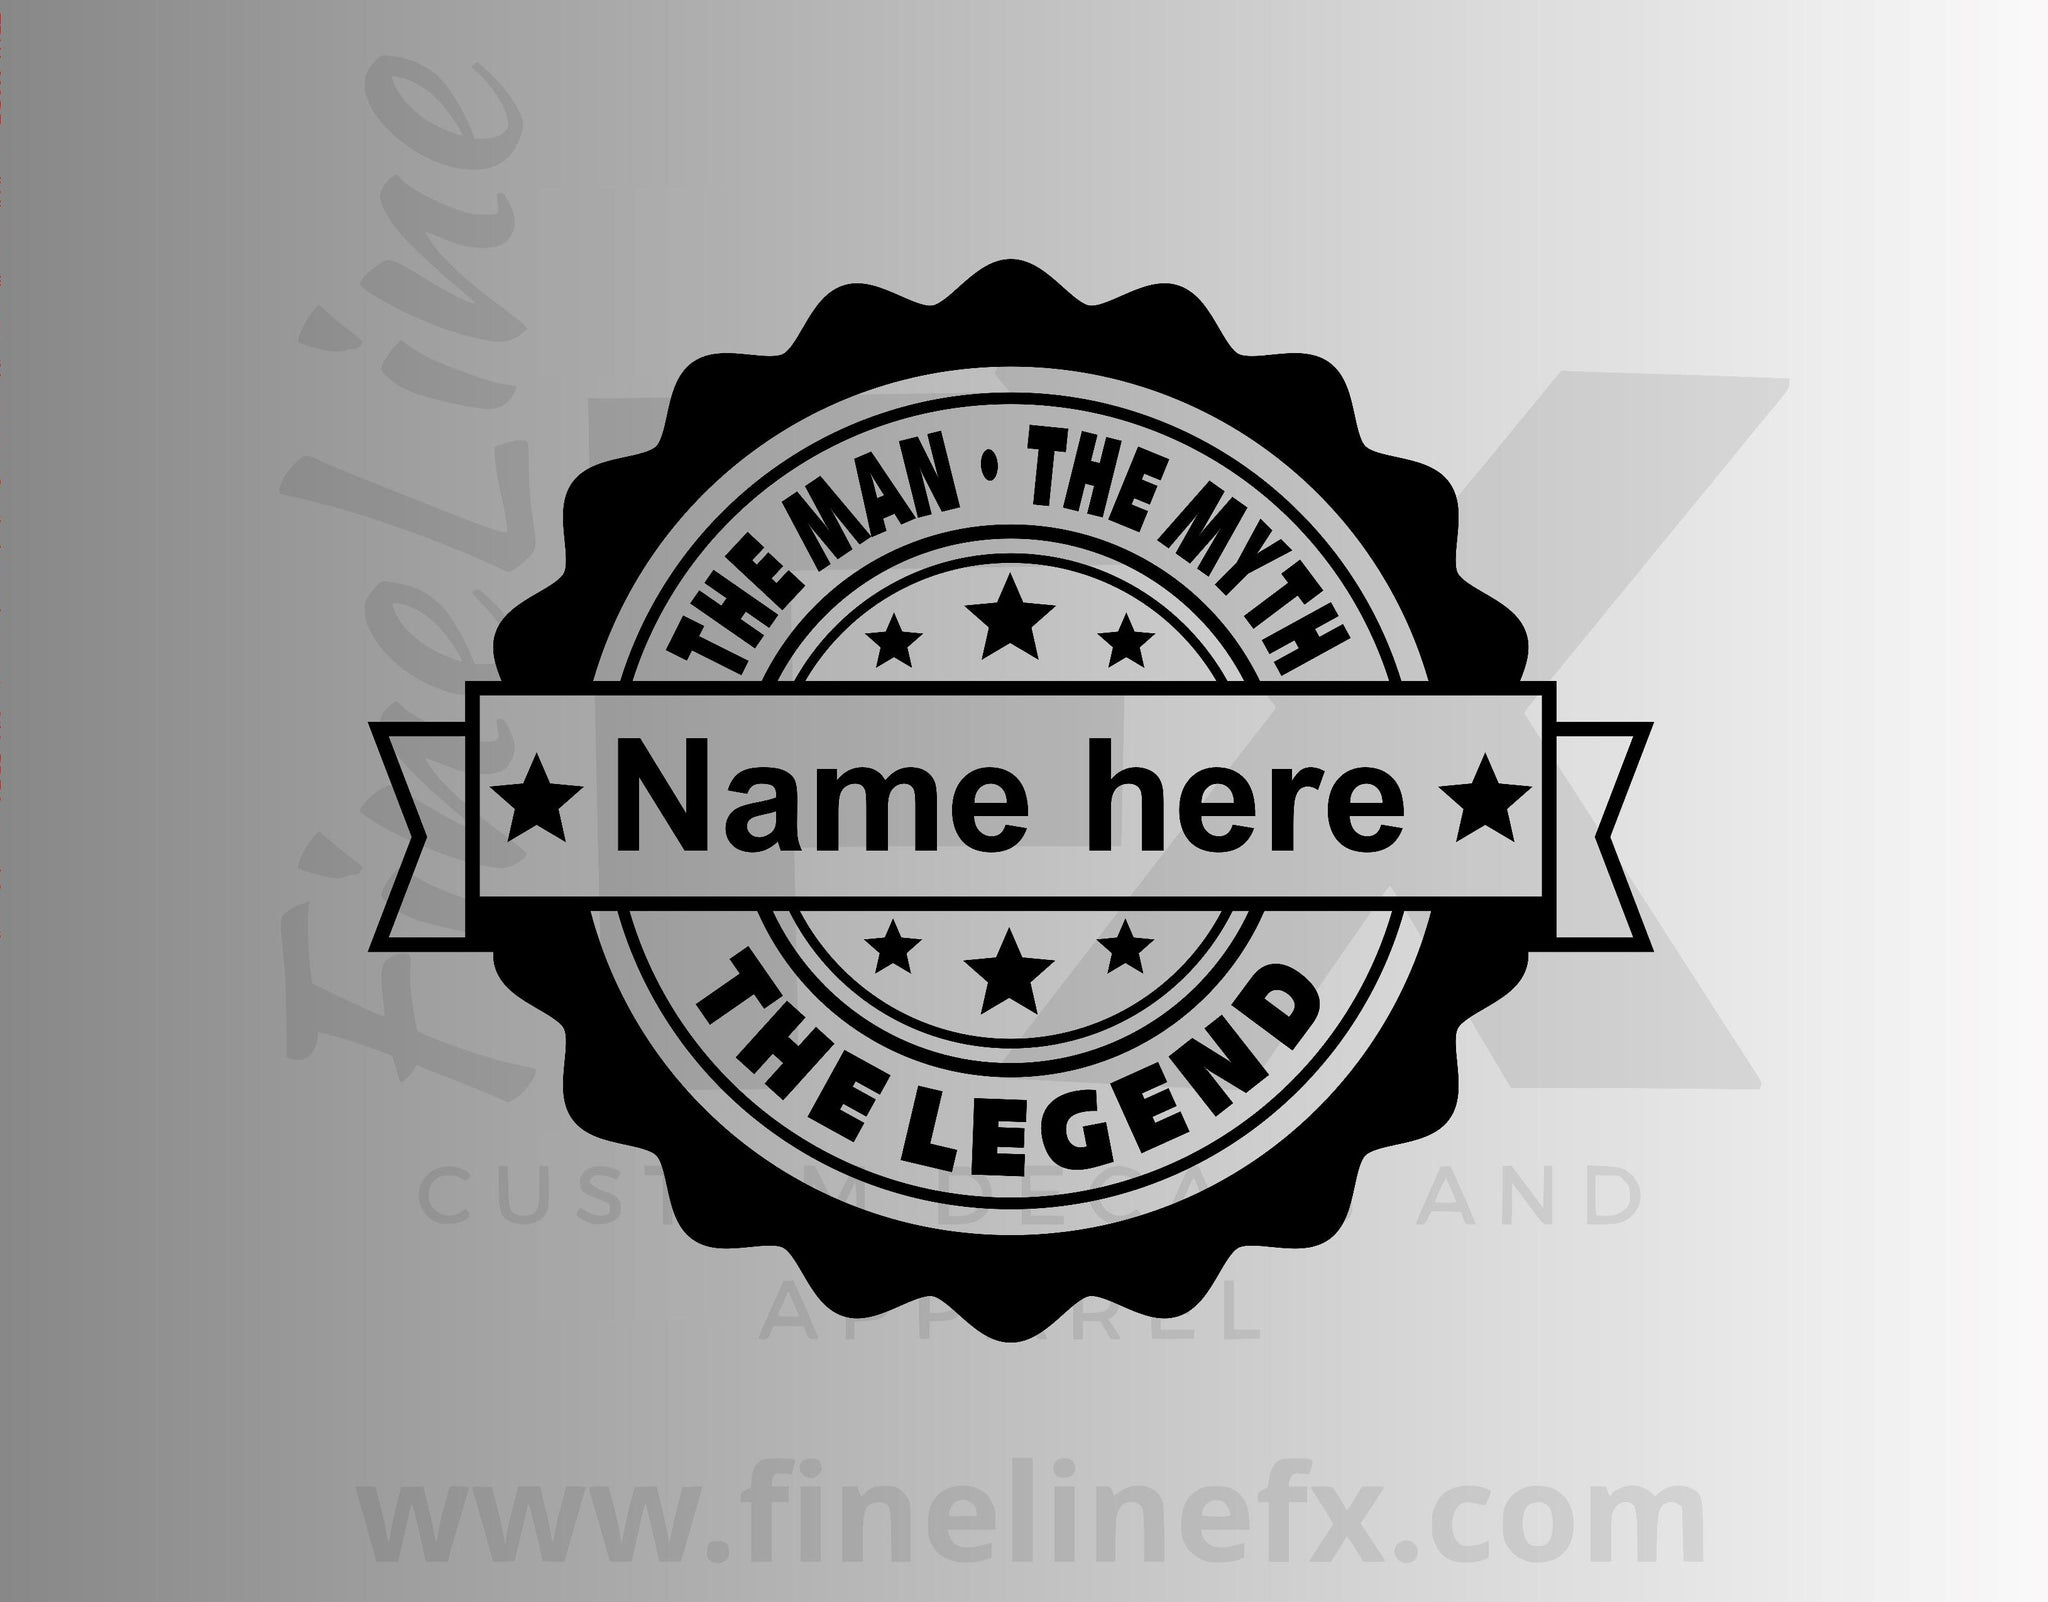 The Man, The Myth, The Legend Custom Text Personalized Vinyl Decal Sticker